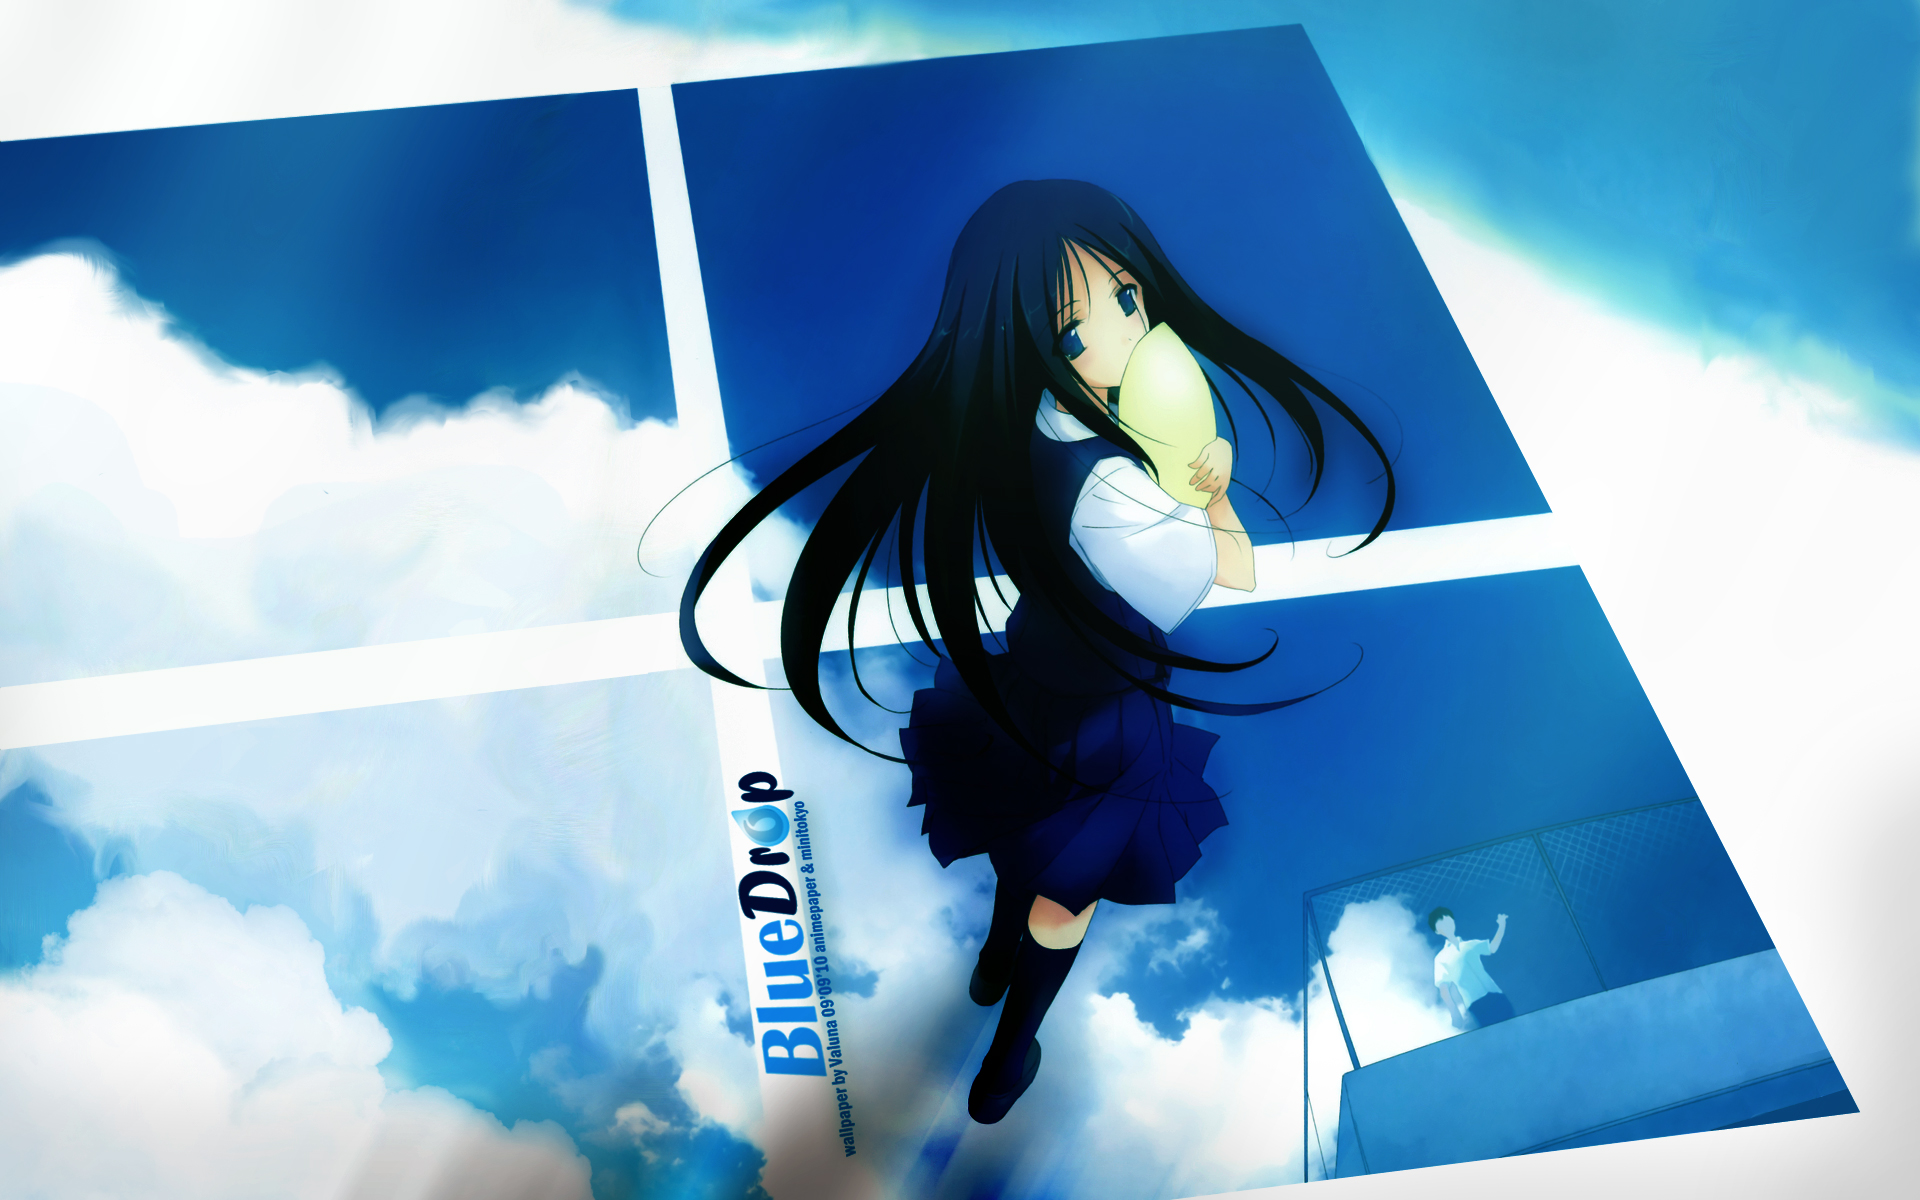 100 Wallpapers de anime HD Konachan-com-83342-blue_eyes-blue_hair-clouds-fujiwara_warawara-long_hair-scenic-sky